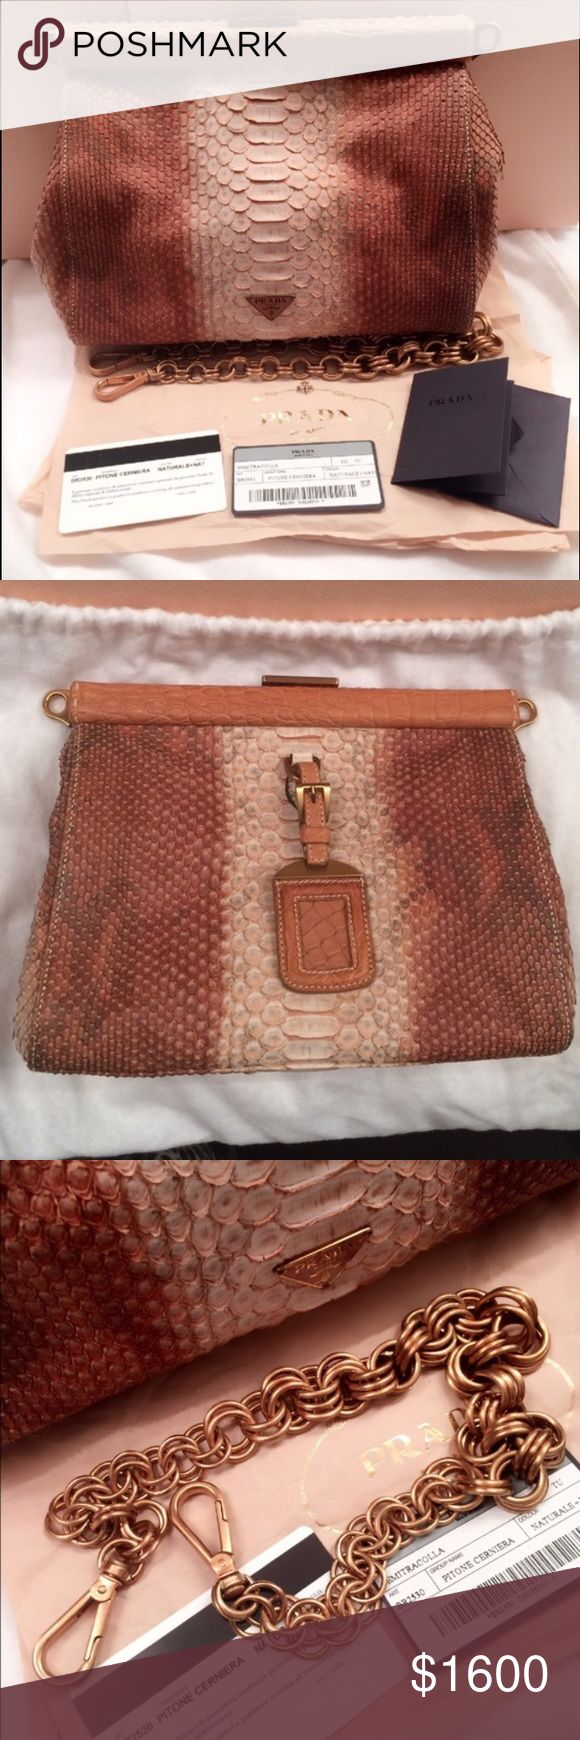 burberry sale outlet online a1ey  Prada crocodile and python skin clutch NWT